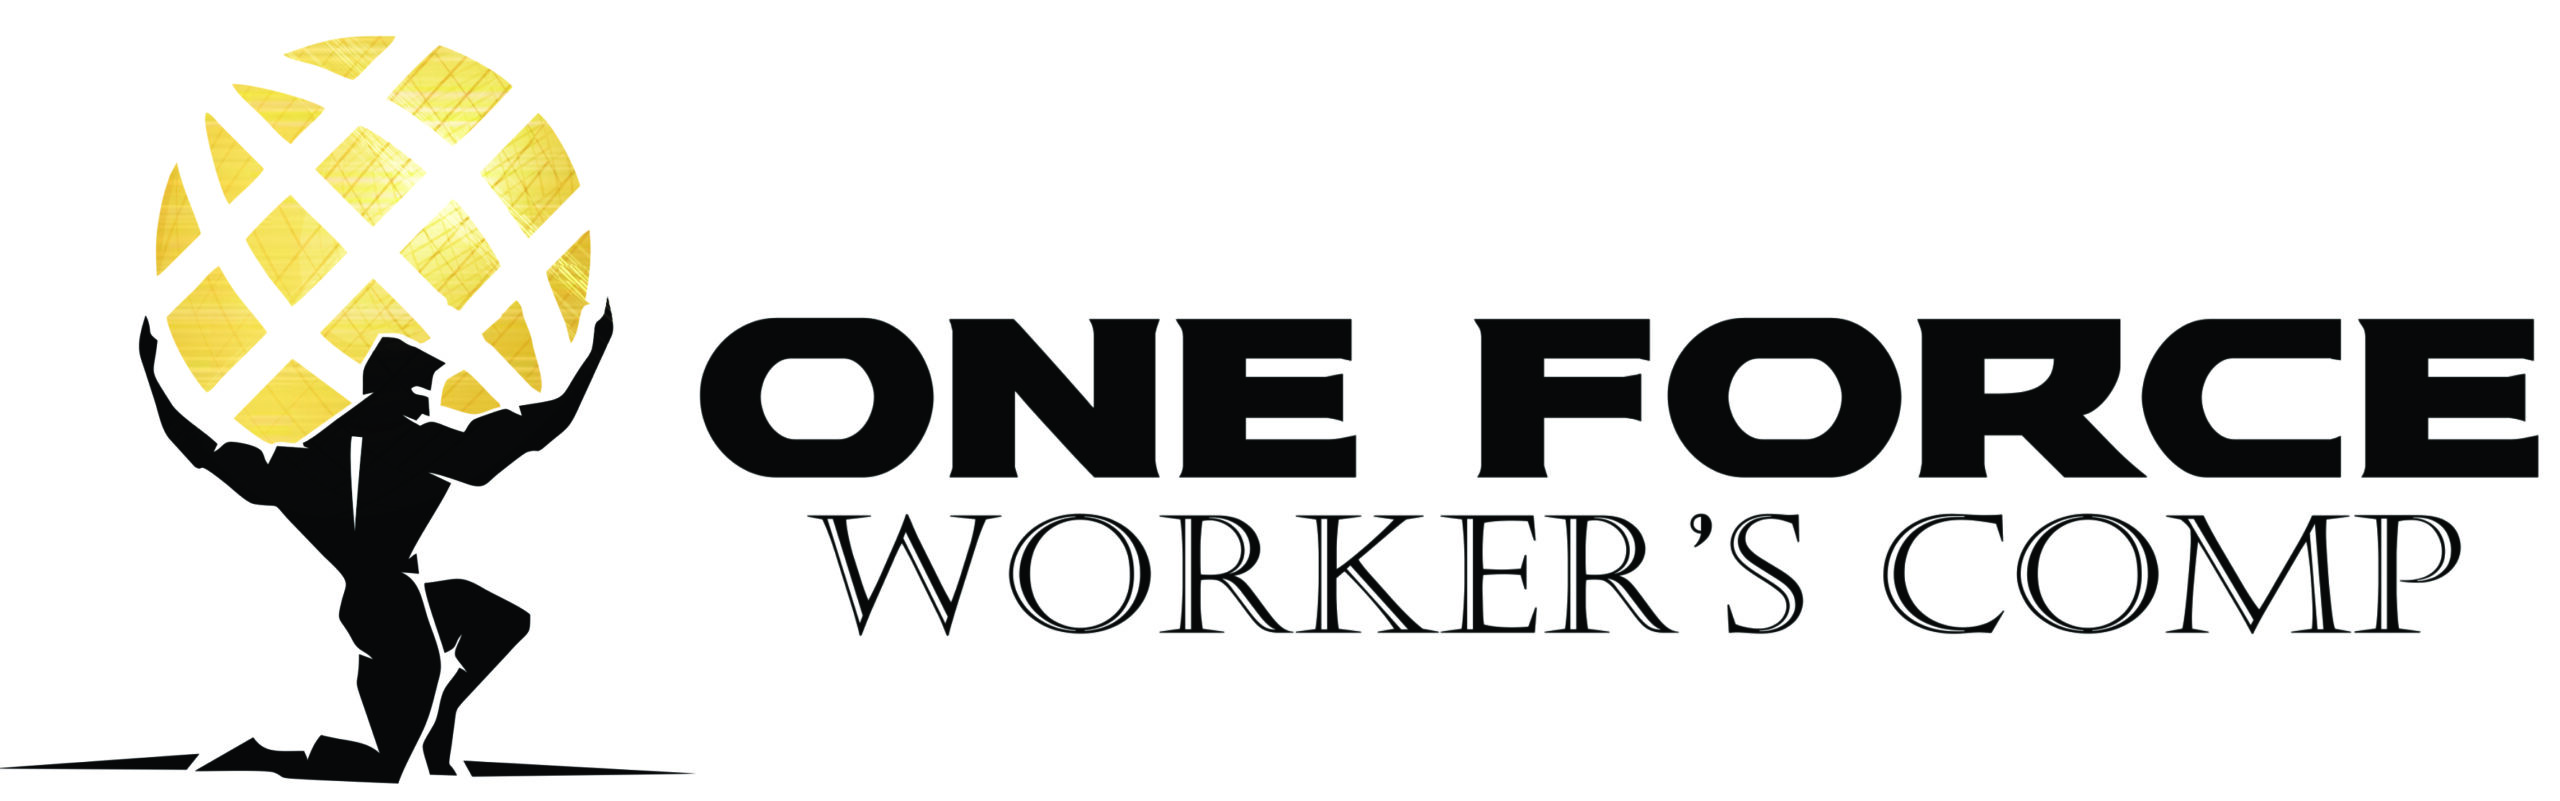 Cheap Workers Compensation in Florida | One Force WC